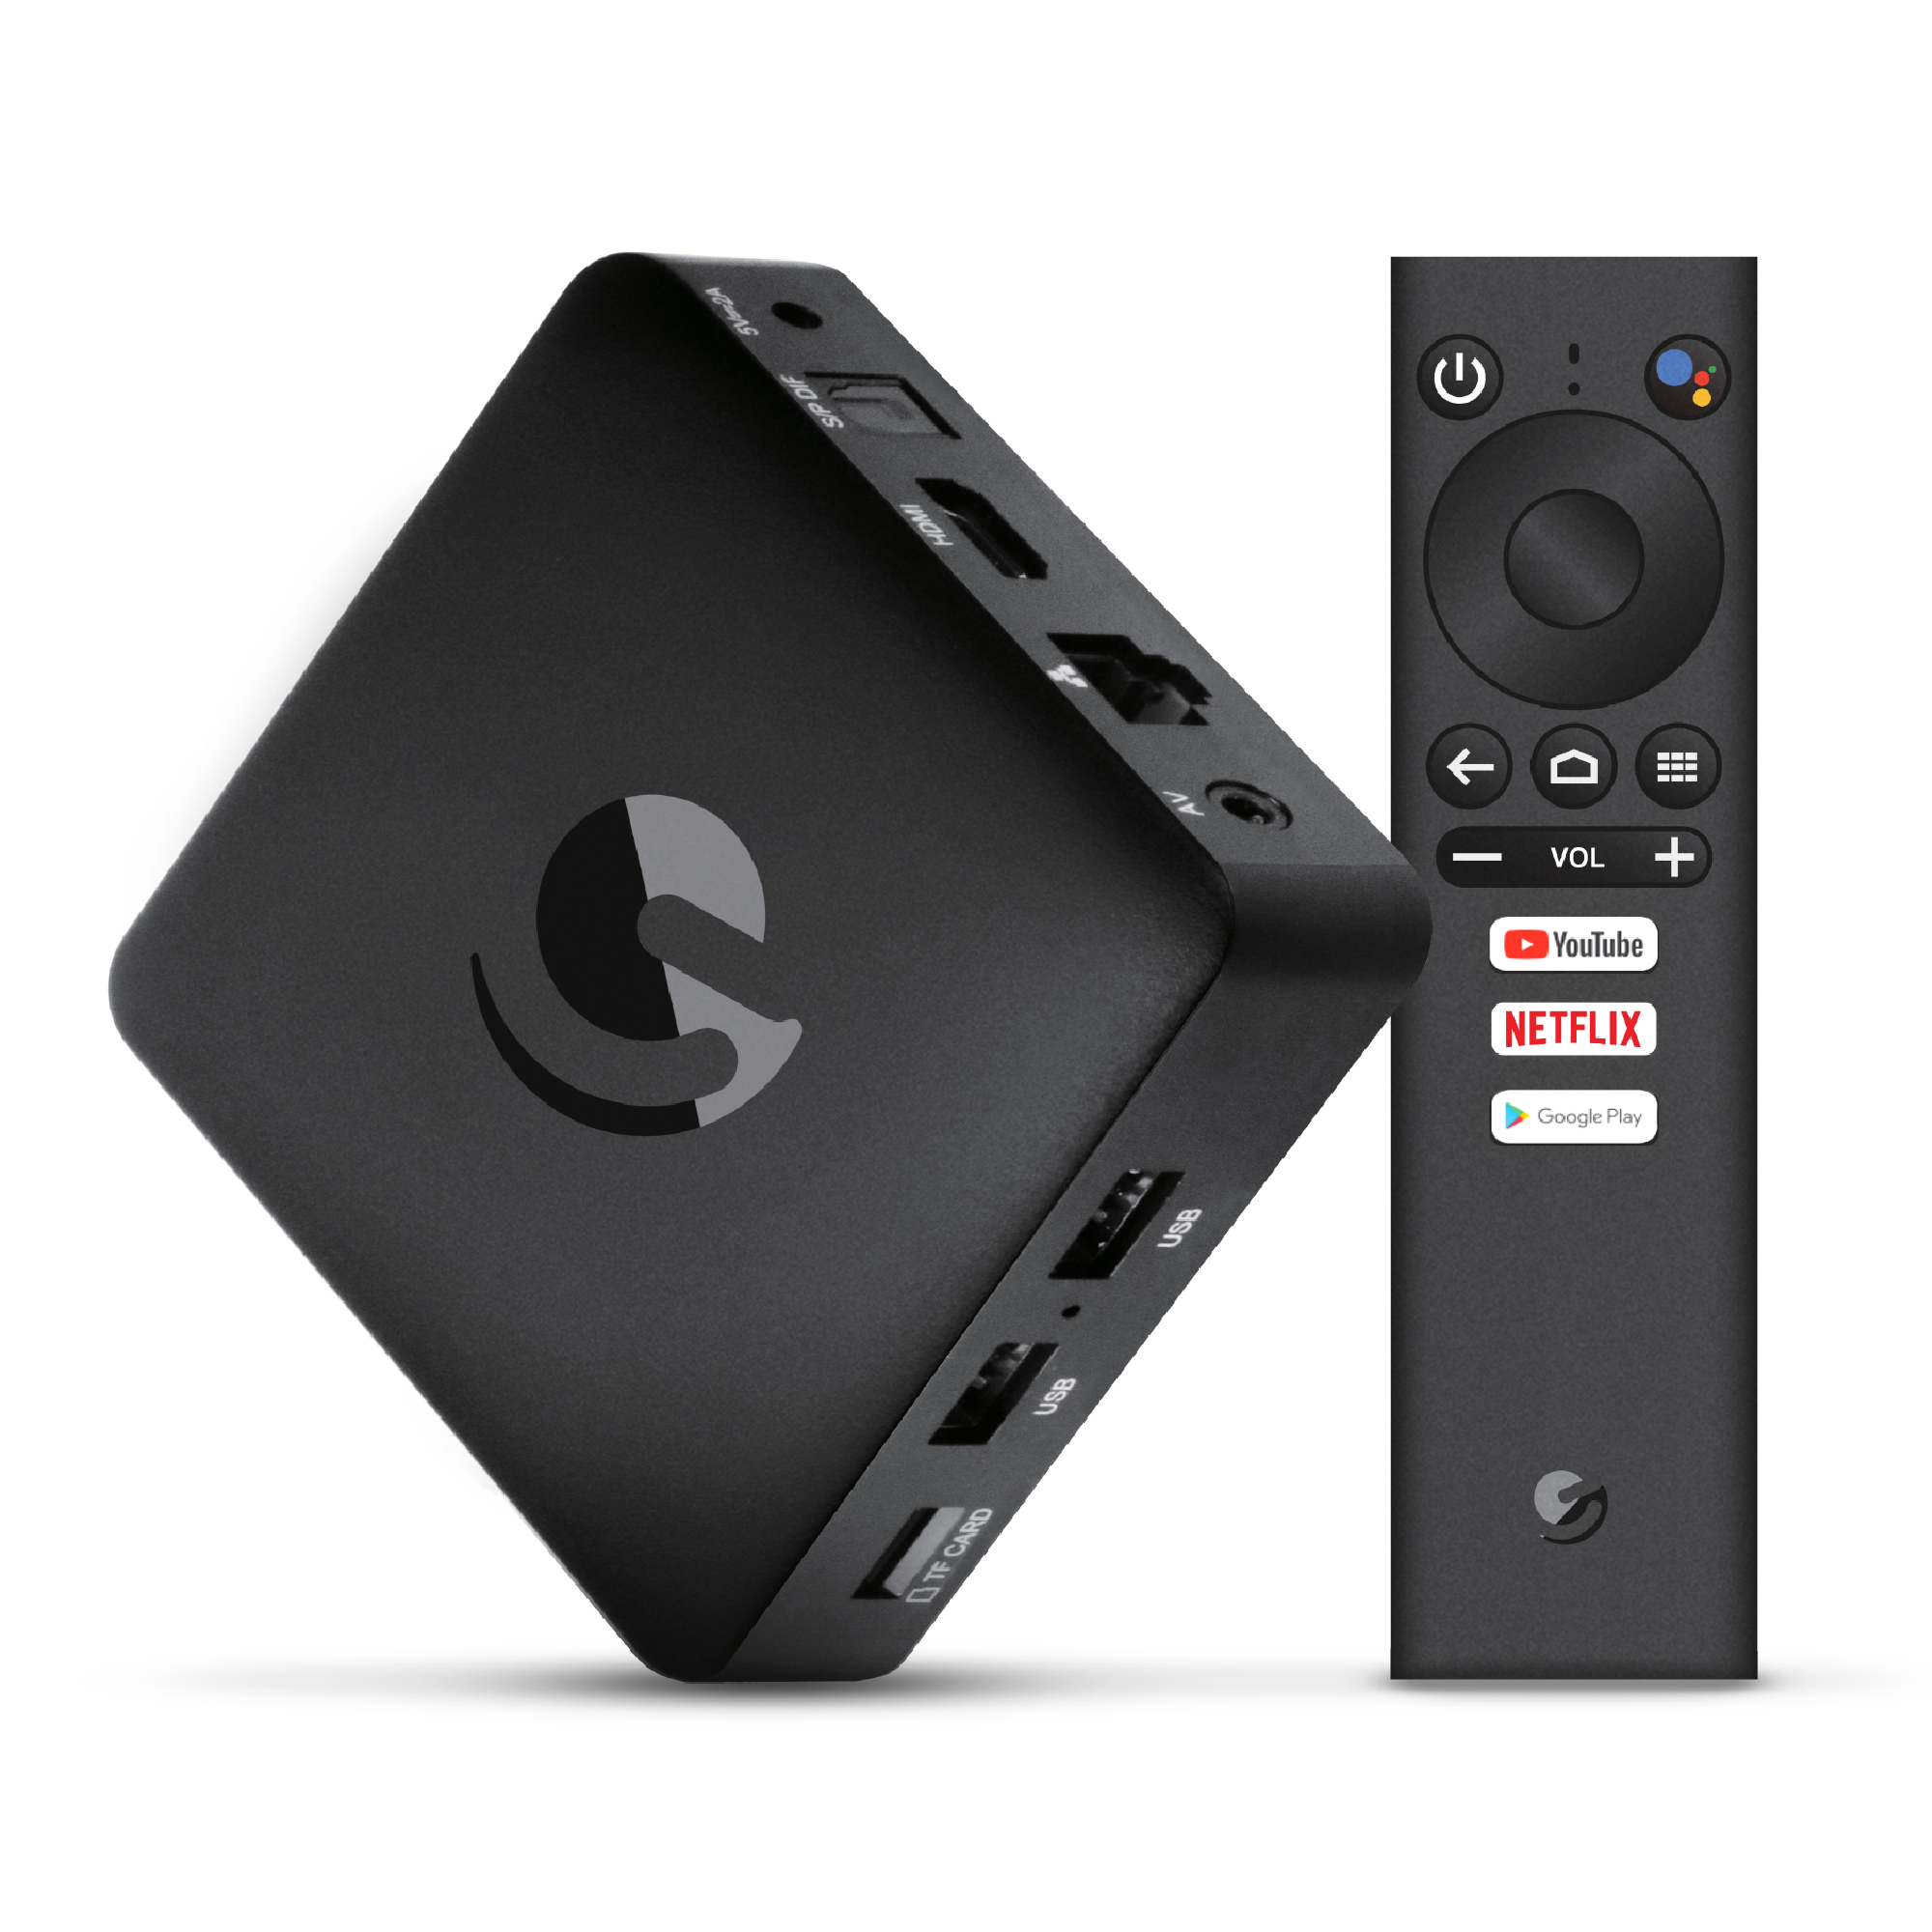 Jetstream 4K Ultra HD Android TV Box with Voice Search Remote - Compatible with Google Assistant